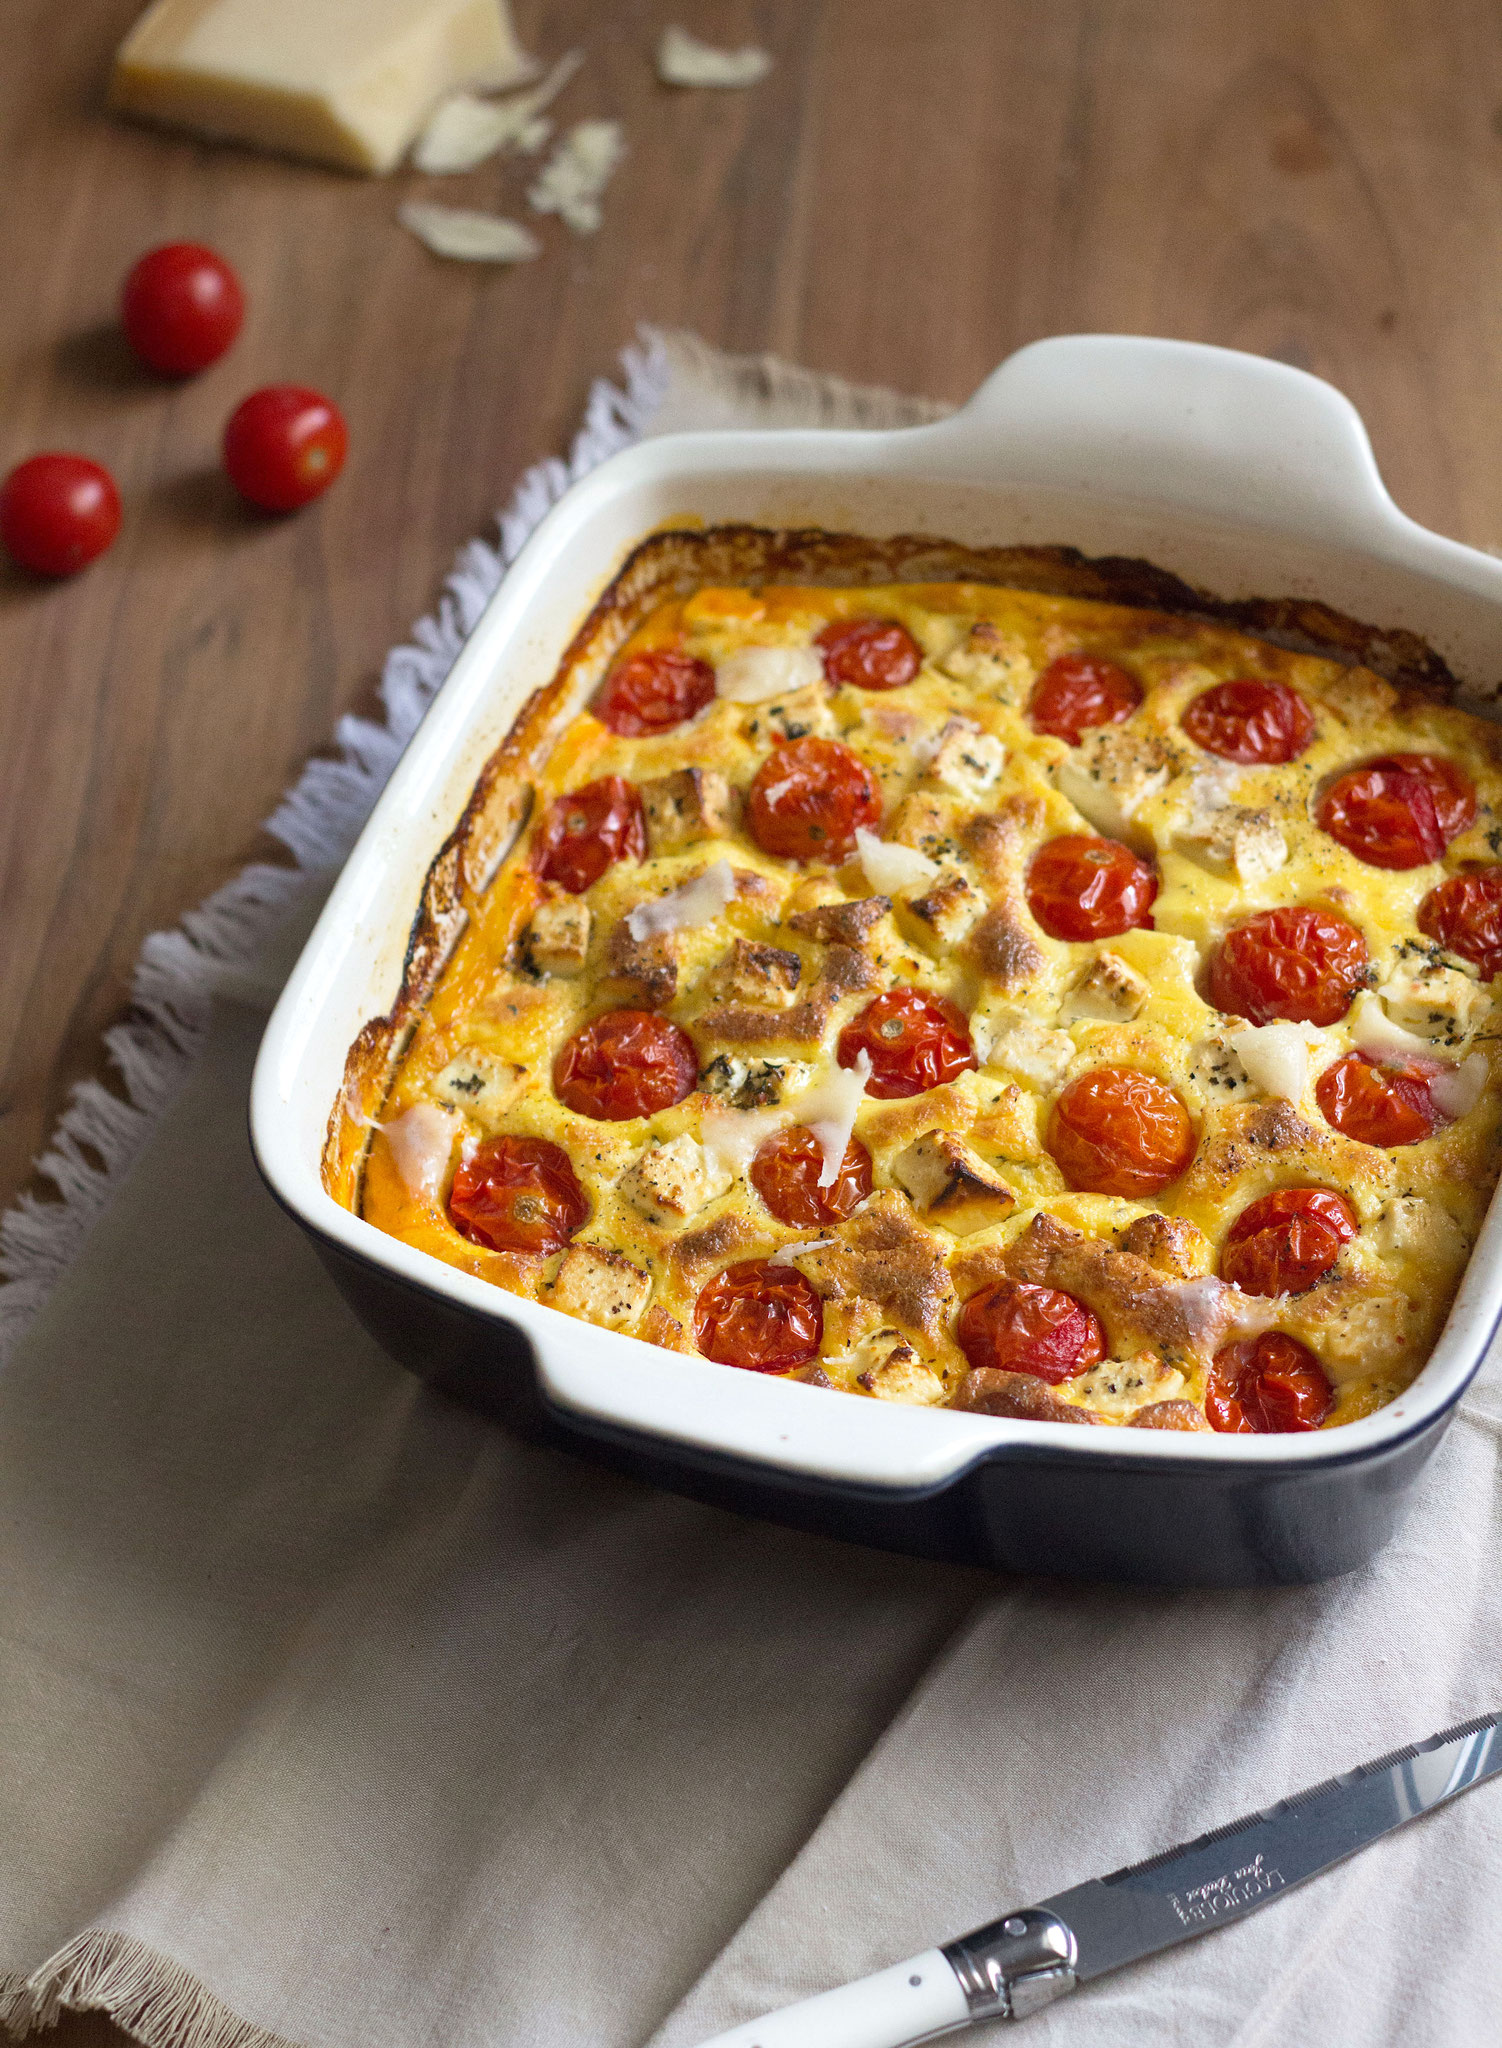 gratin de tomates cerises la polenta et feta lady coquillette recettes de cuisine. Black Bedroom Furniture Sets. Home Design Ideas